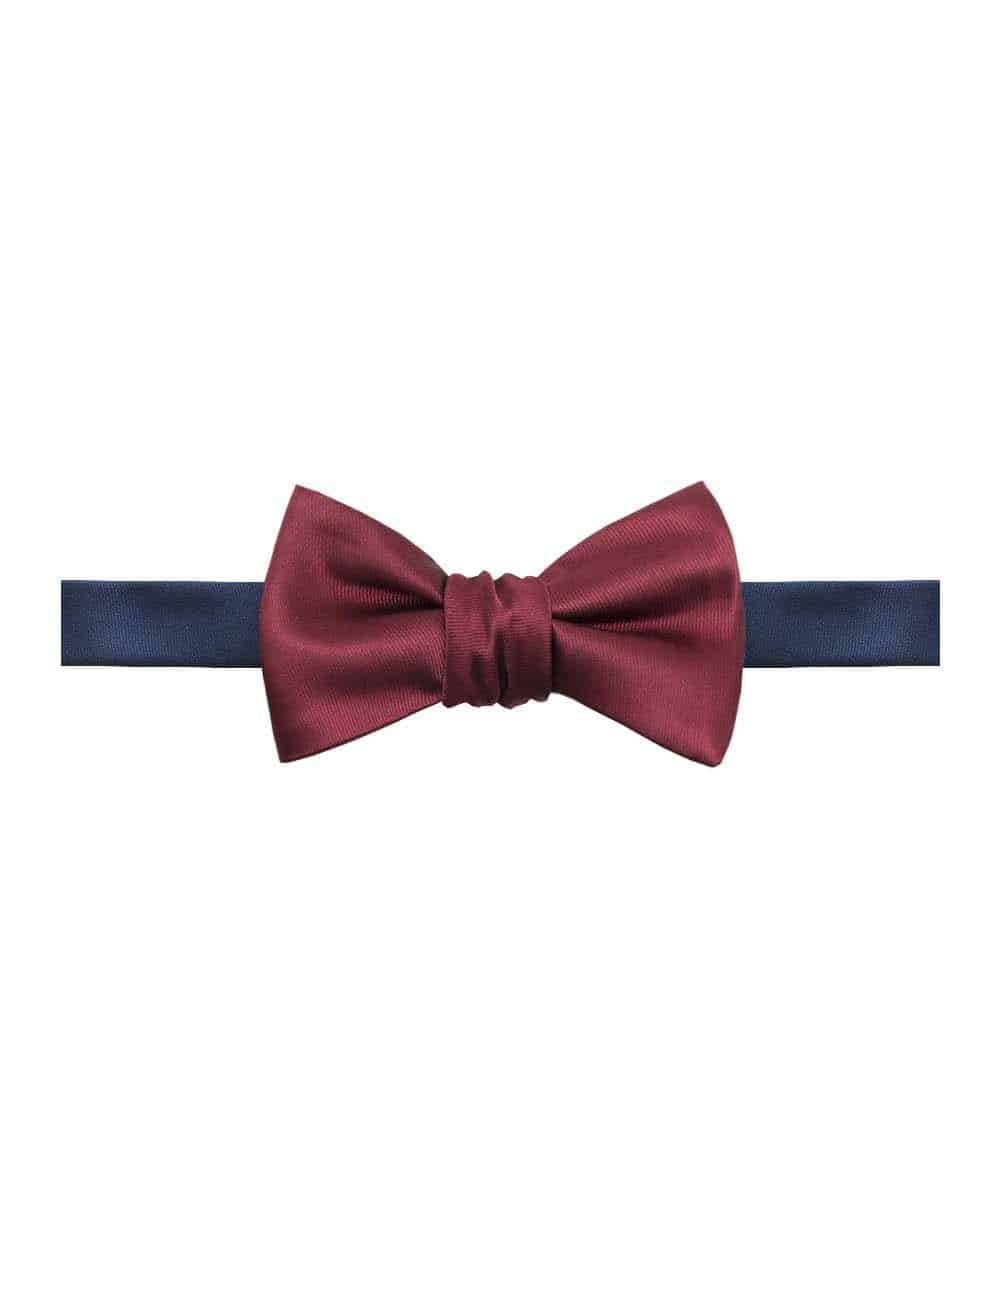 Solid Wine and Navy Reversible Woven Self Tie Bowtie WRSTBT3.11